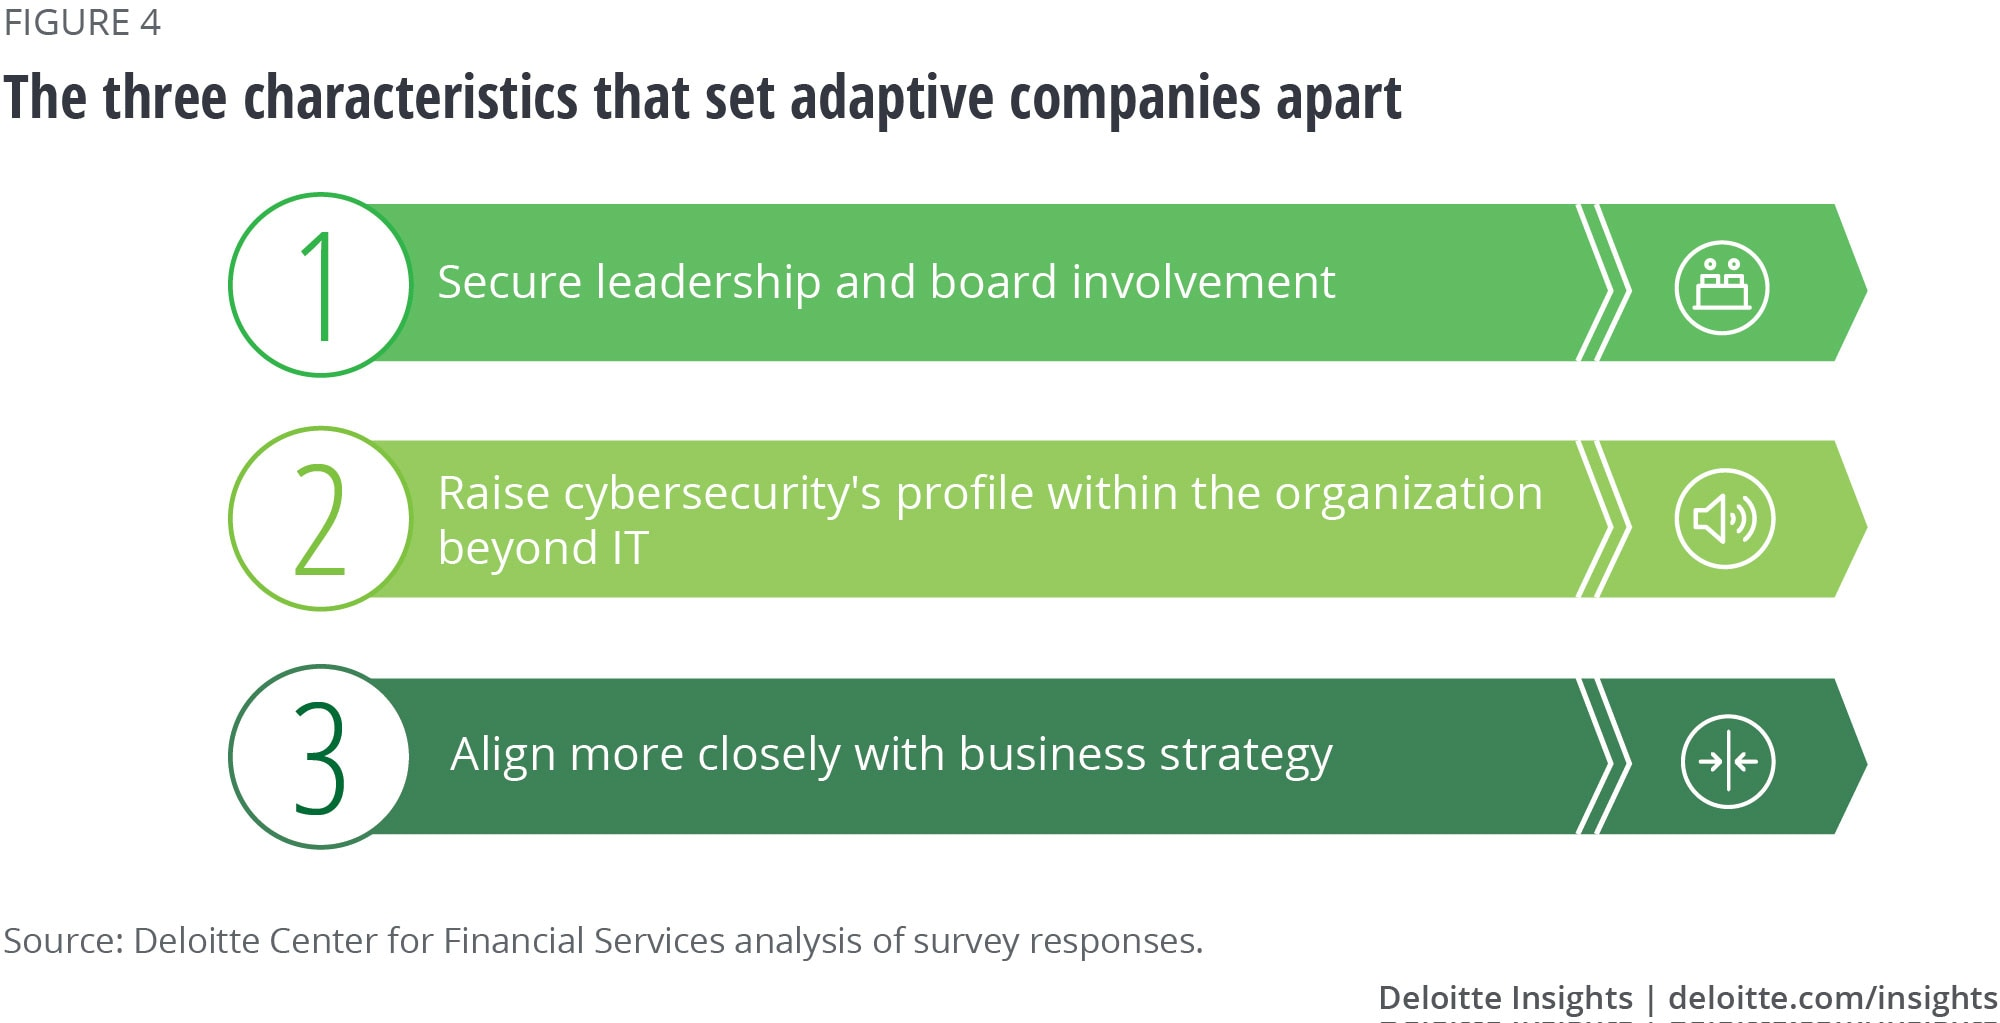 The three characteristics that set adaptive companies apart